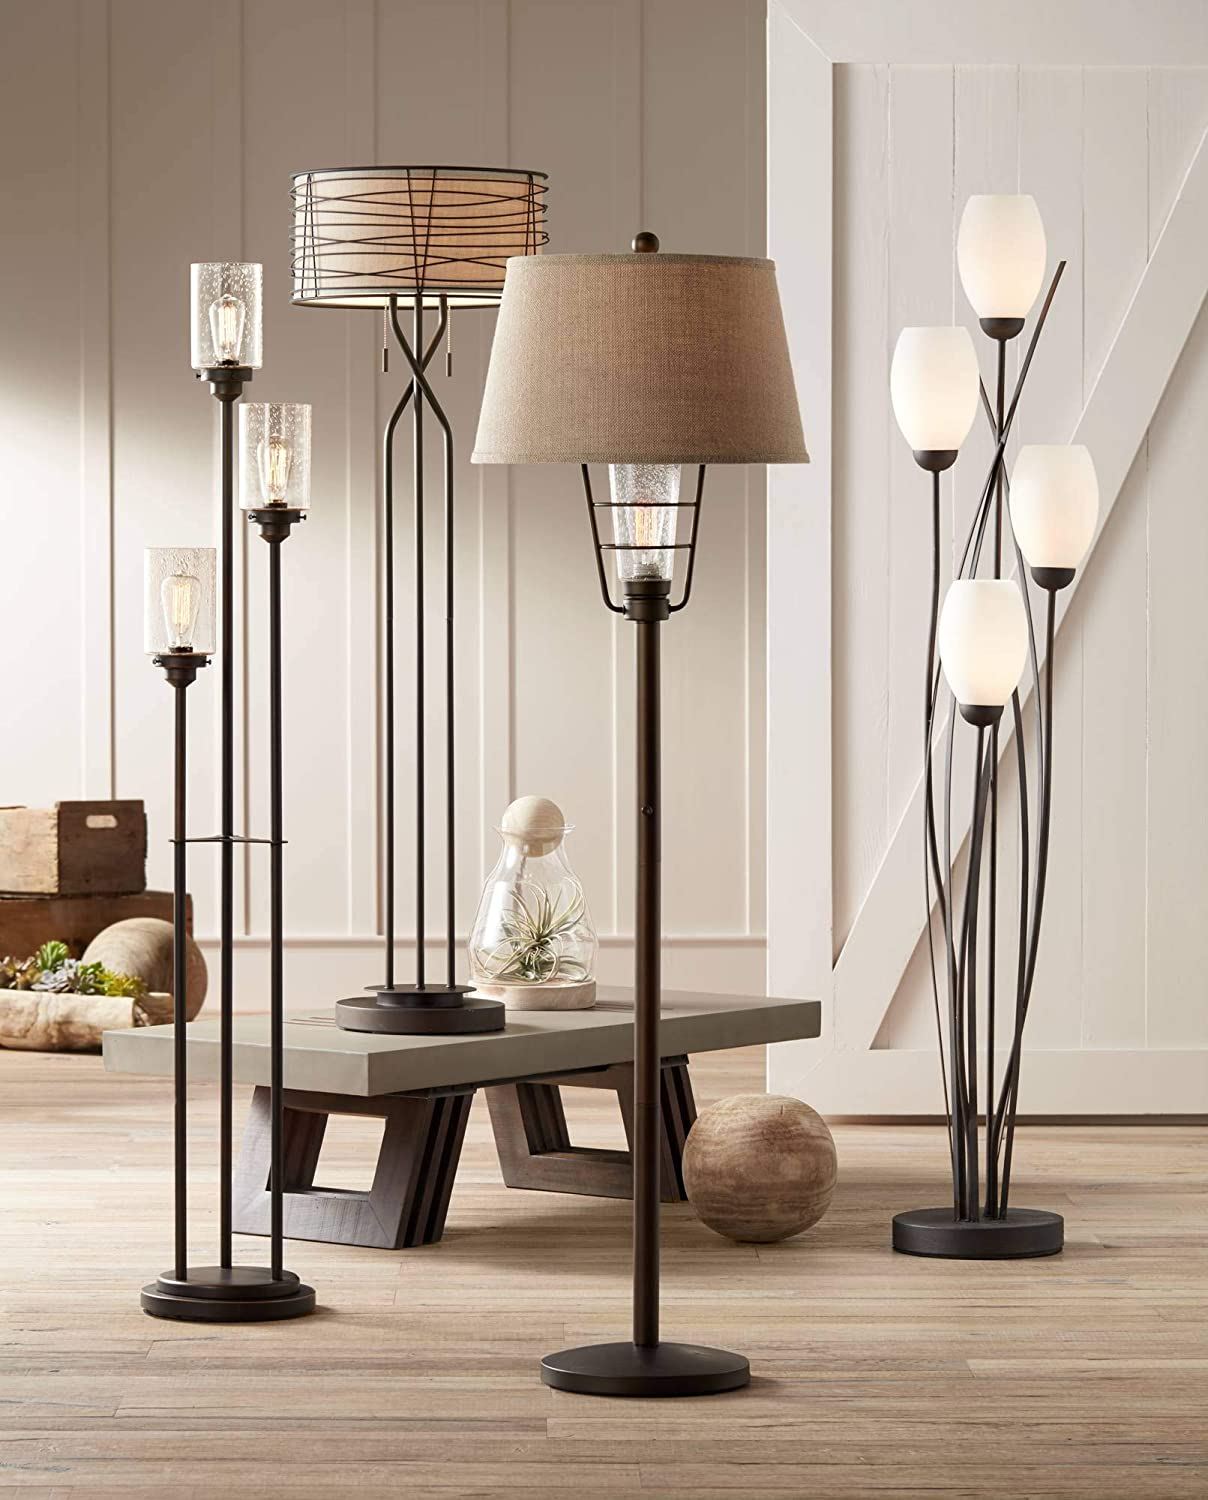 Modern Floor Lamp 4-Light Tree Ginger Black Tulip White Cased Glass Shades for Living Room Bedroom Uplight – Franklin Iron Works